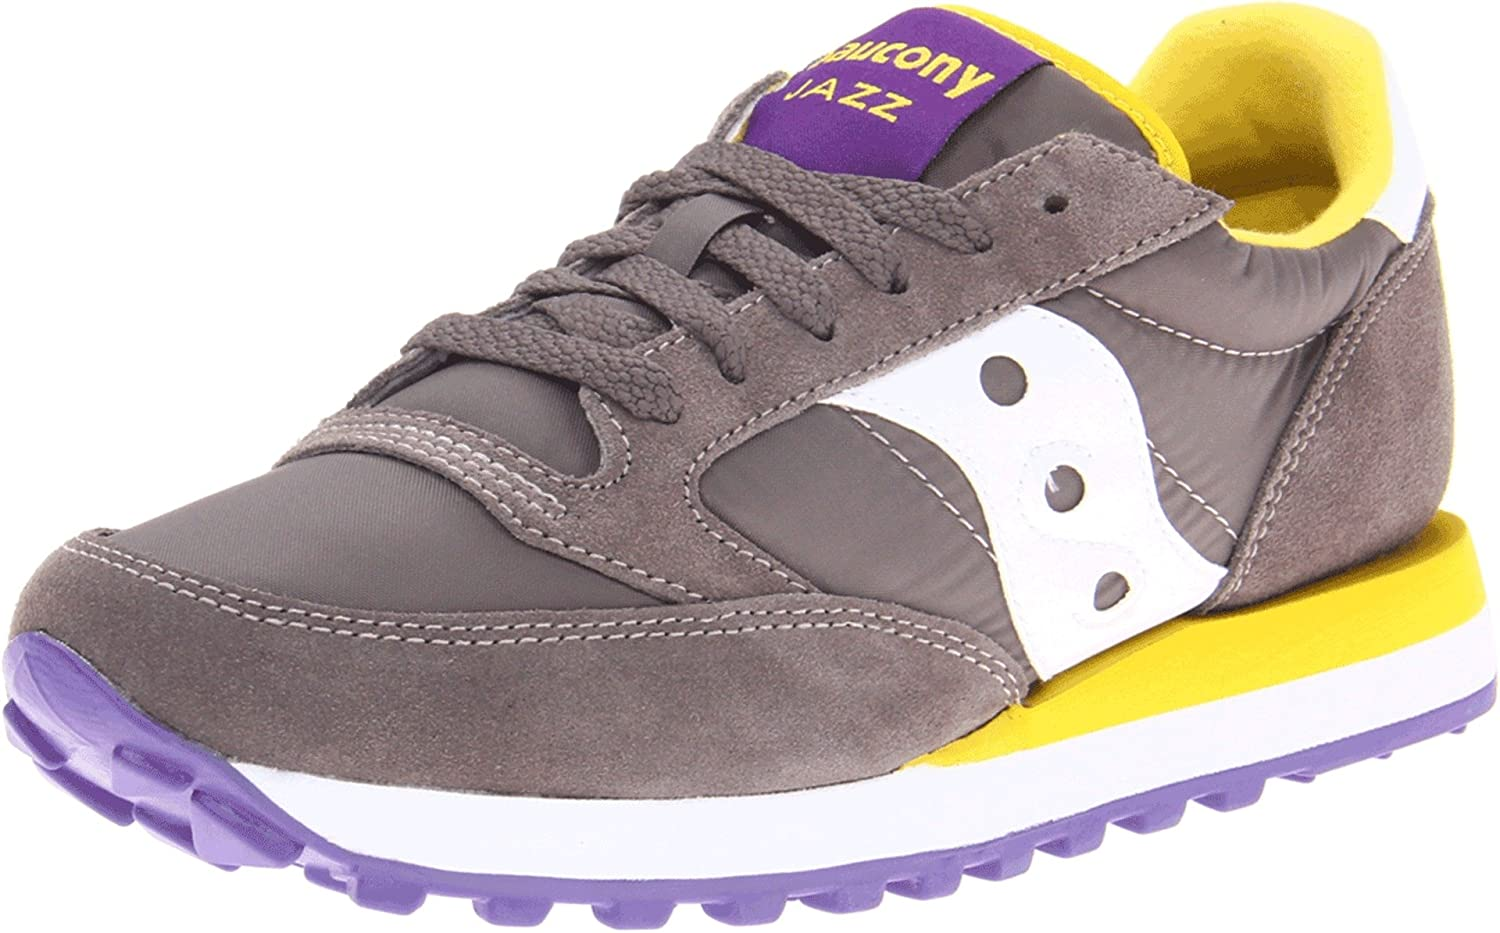 Saucony Originals Women's Jazz Original Sneaker B0083LPU94 8.5 M US|Charcoal/Yellow/Purple